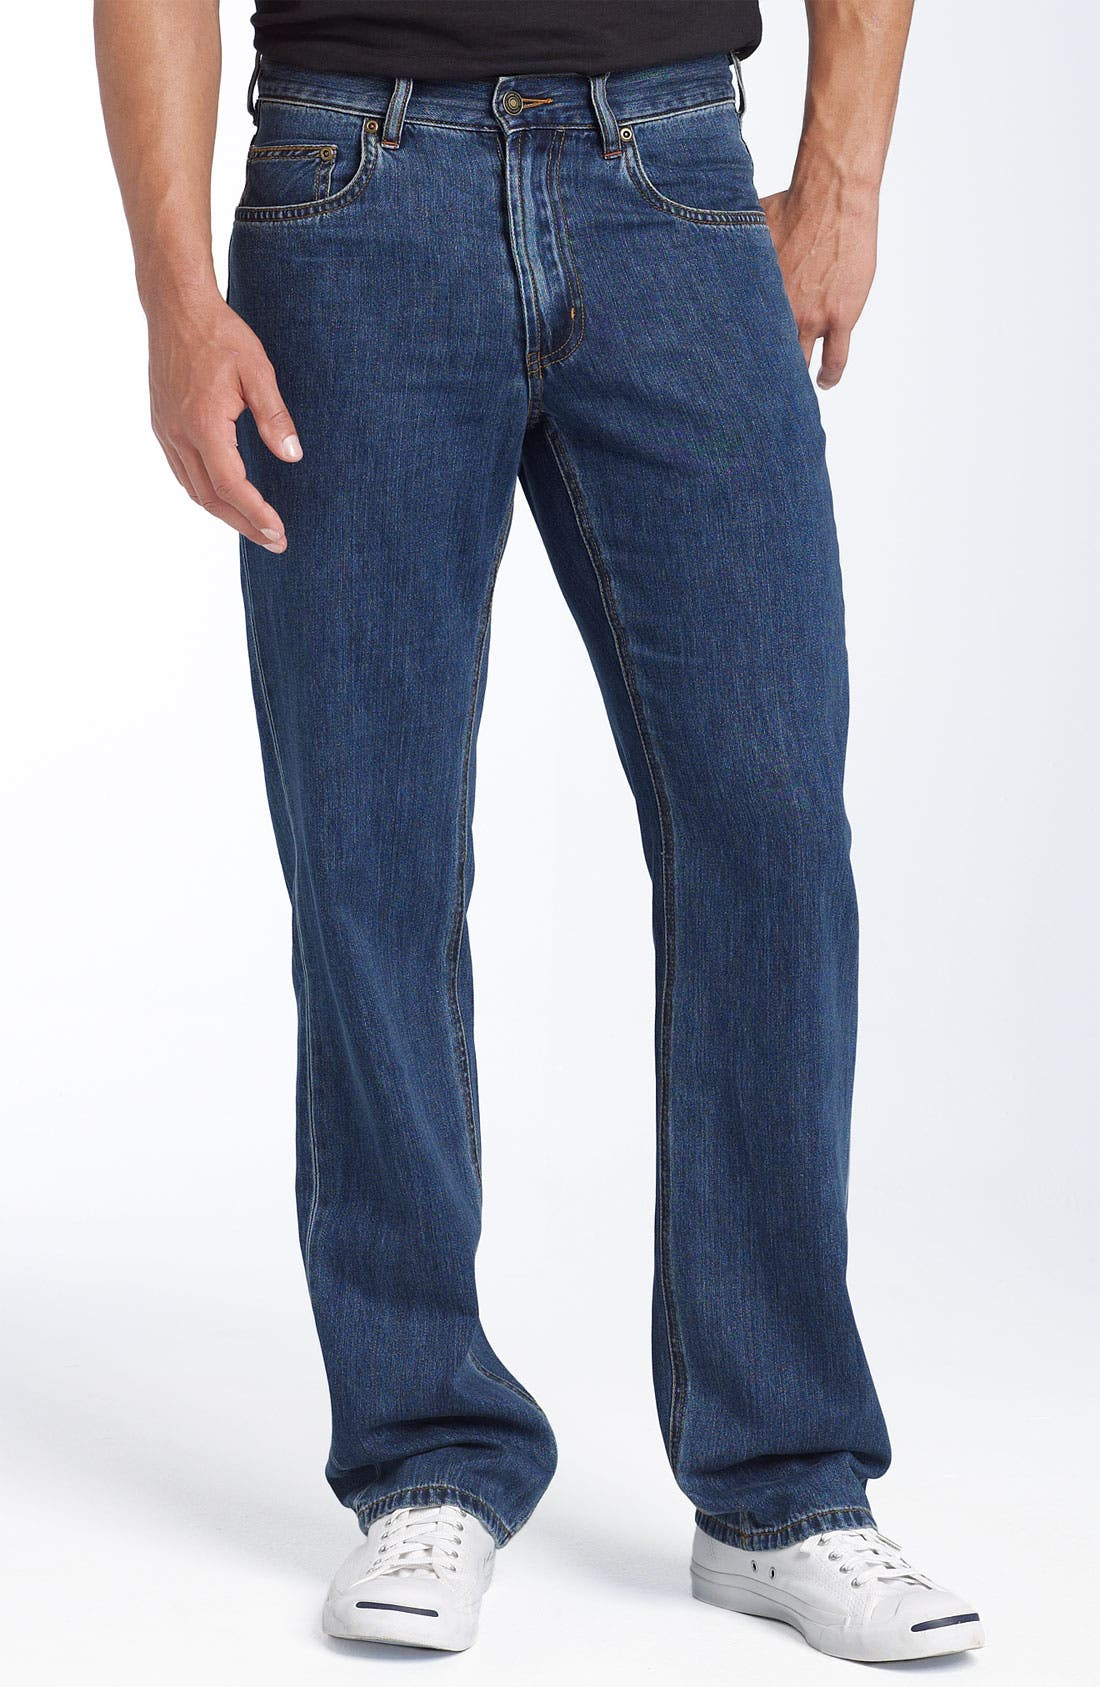 Alternate Image 1 Selected - Tommy Bahama Denim 'Island Ease' Classic Fit Jeans (Medium)